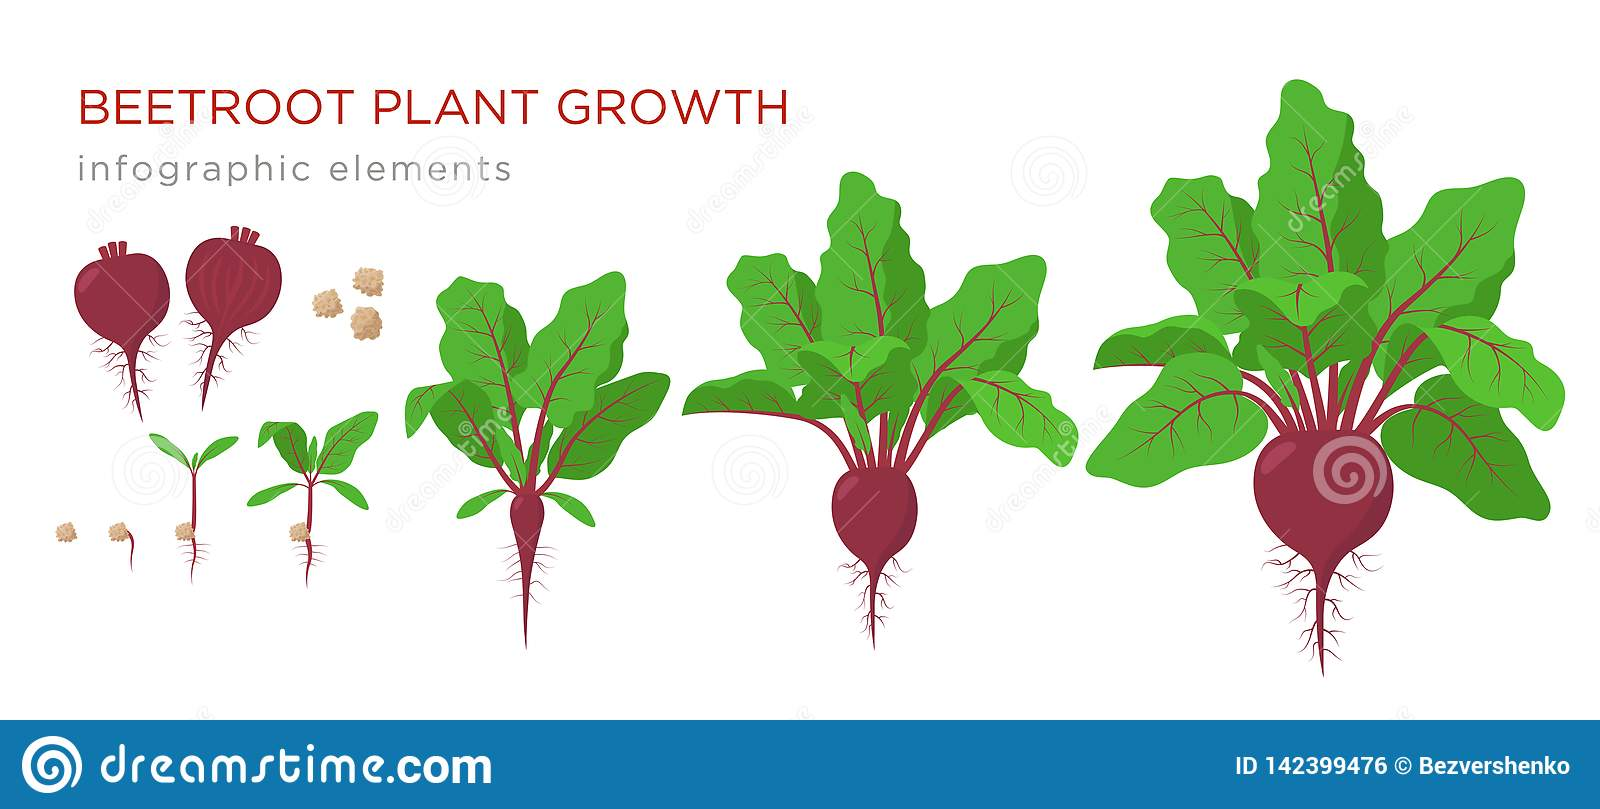 Beetroot Plant Growth Stages Infographic Elements Growing Process Of Beets From Seeds Sprout To Mature Plant With Ripe Stock Vector Illustration Of Agriculture Icon 142399476